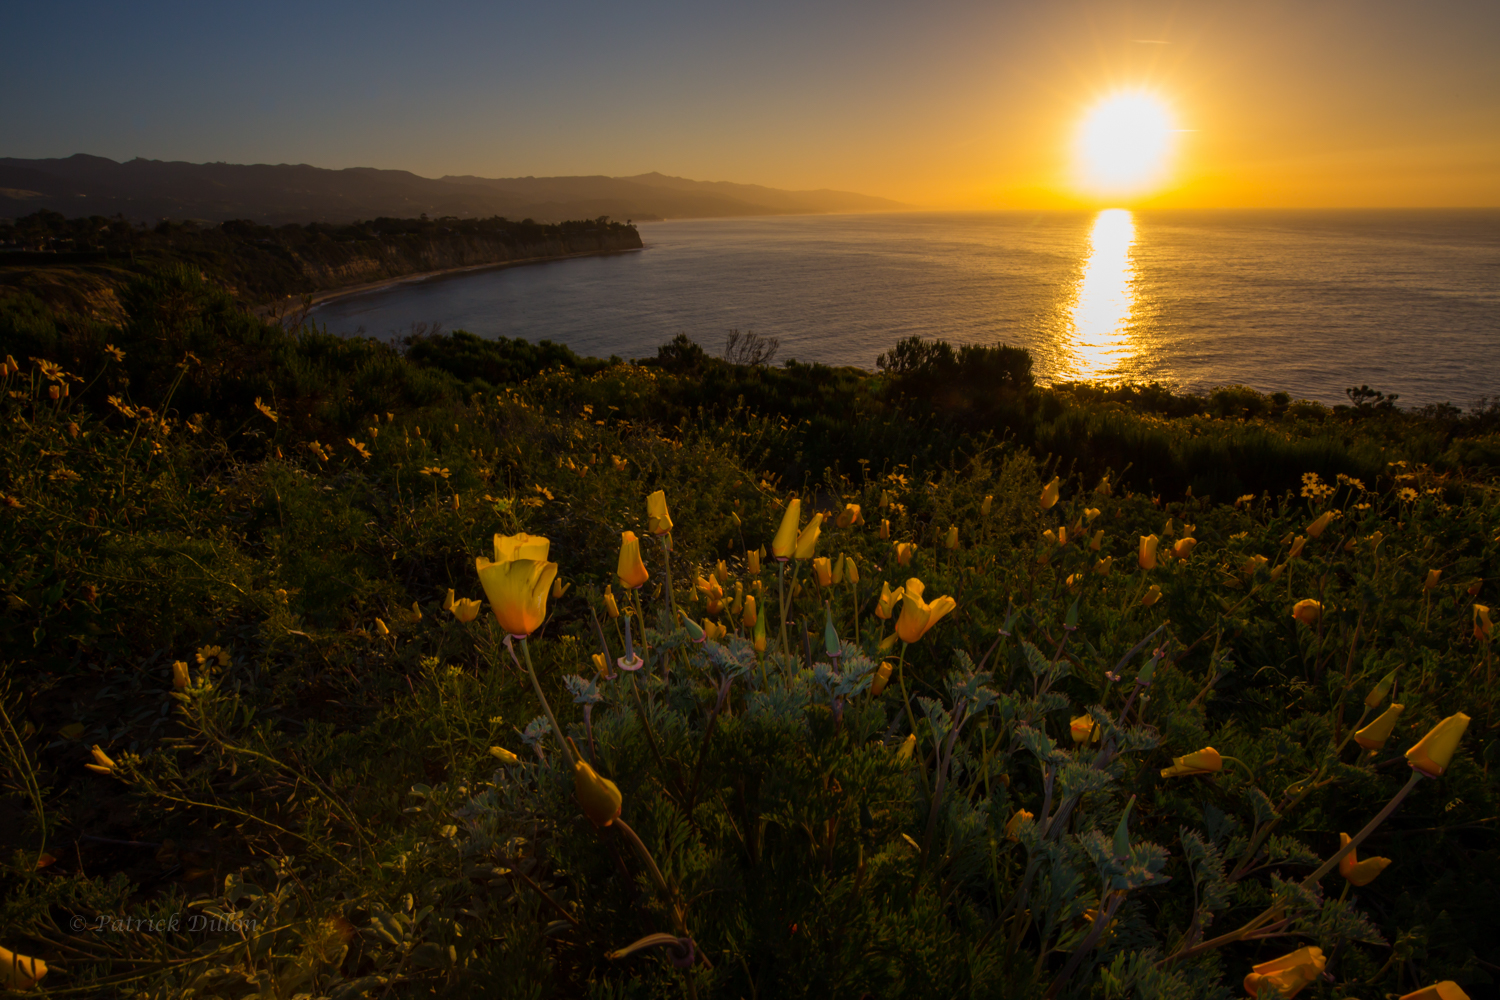 Malibu poppies awaiting the sunrise